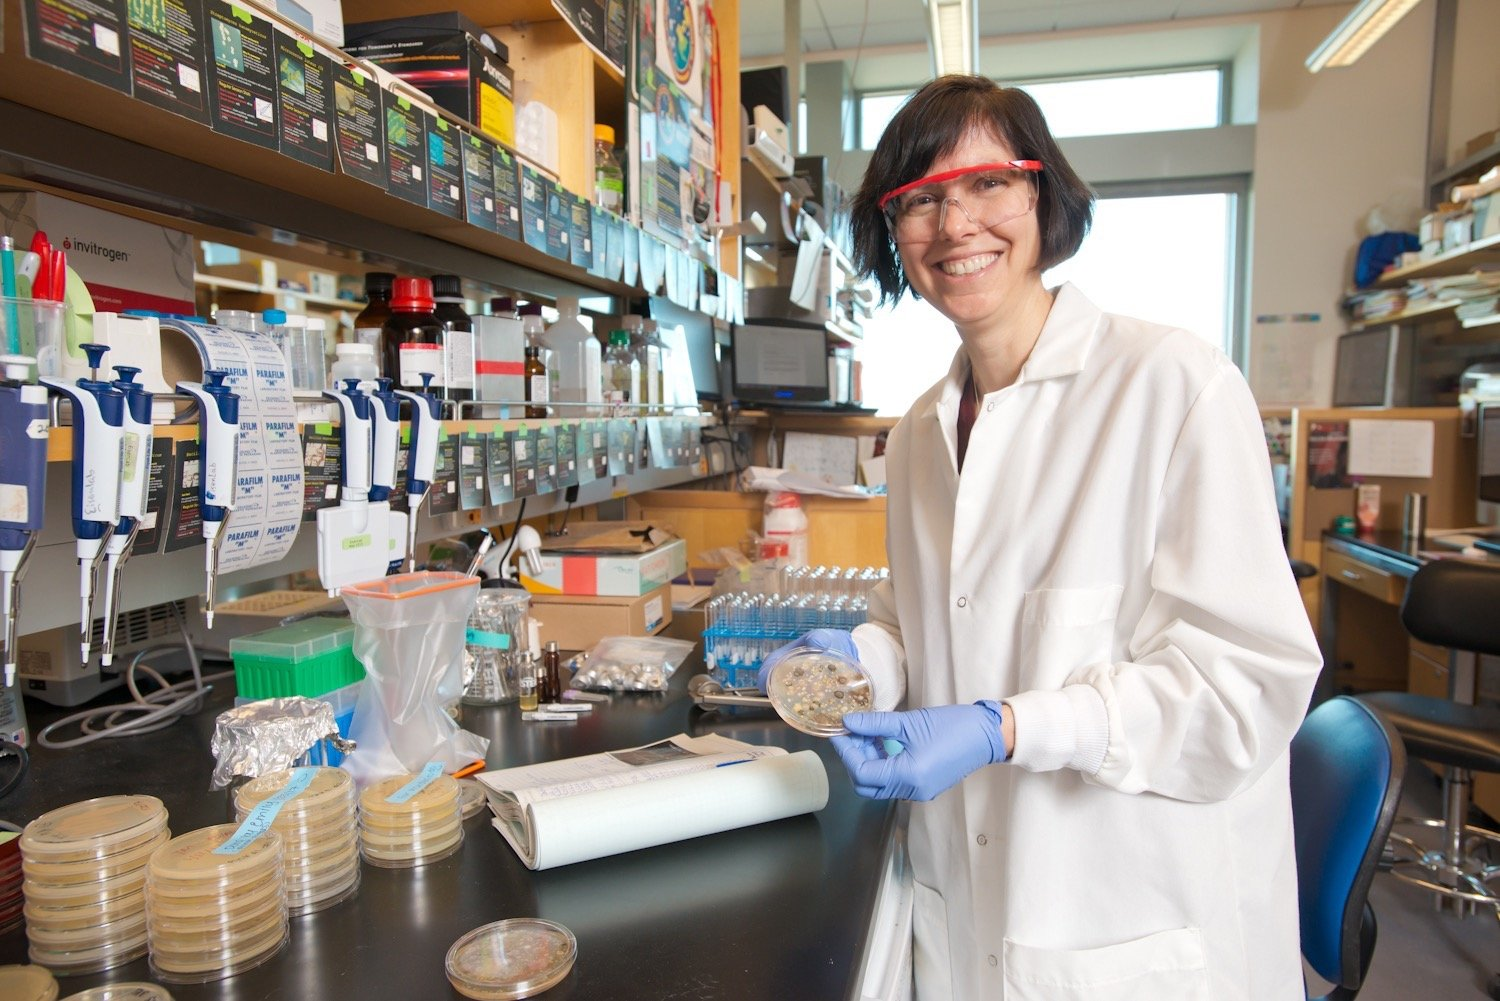 Holly Ganz in the lab at AnimalBiome